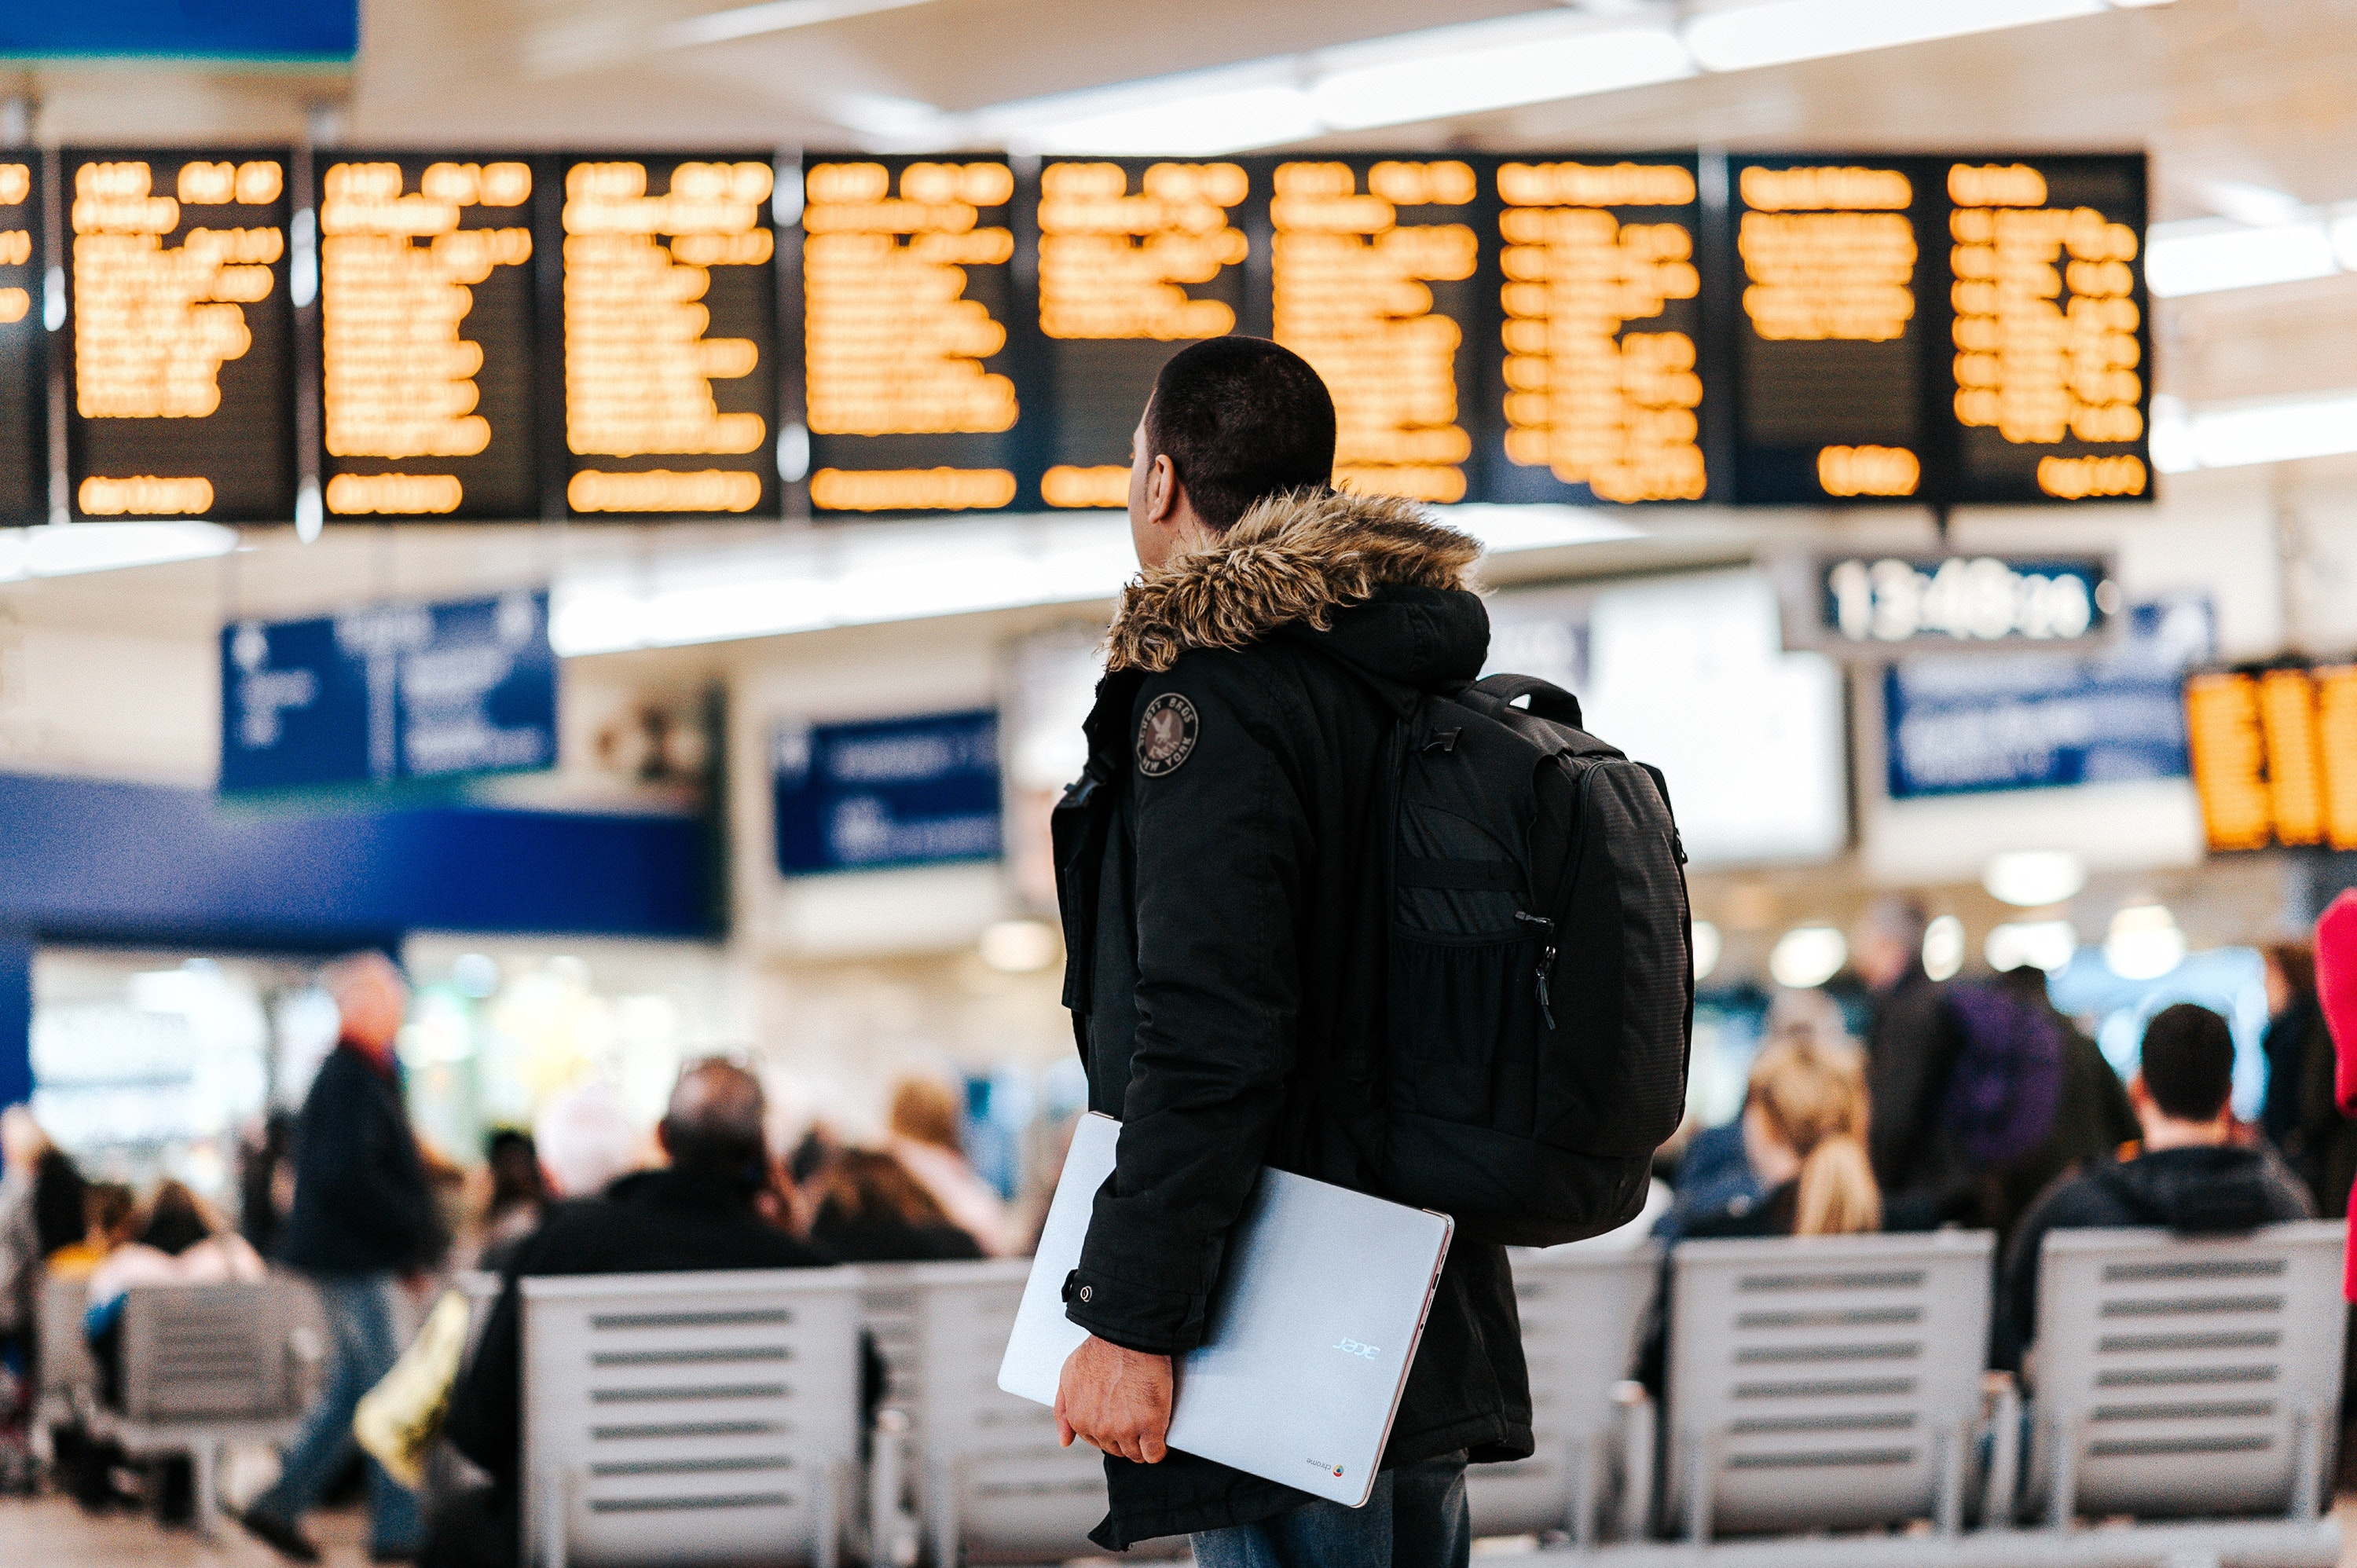 Airlines can use AI to predict when more people will fly, or when weather might create more traffic to the airport.